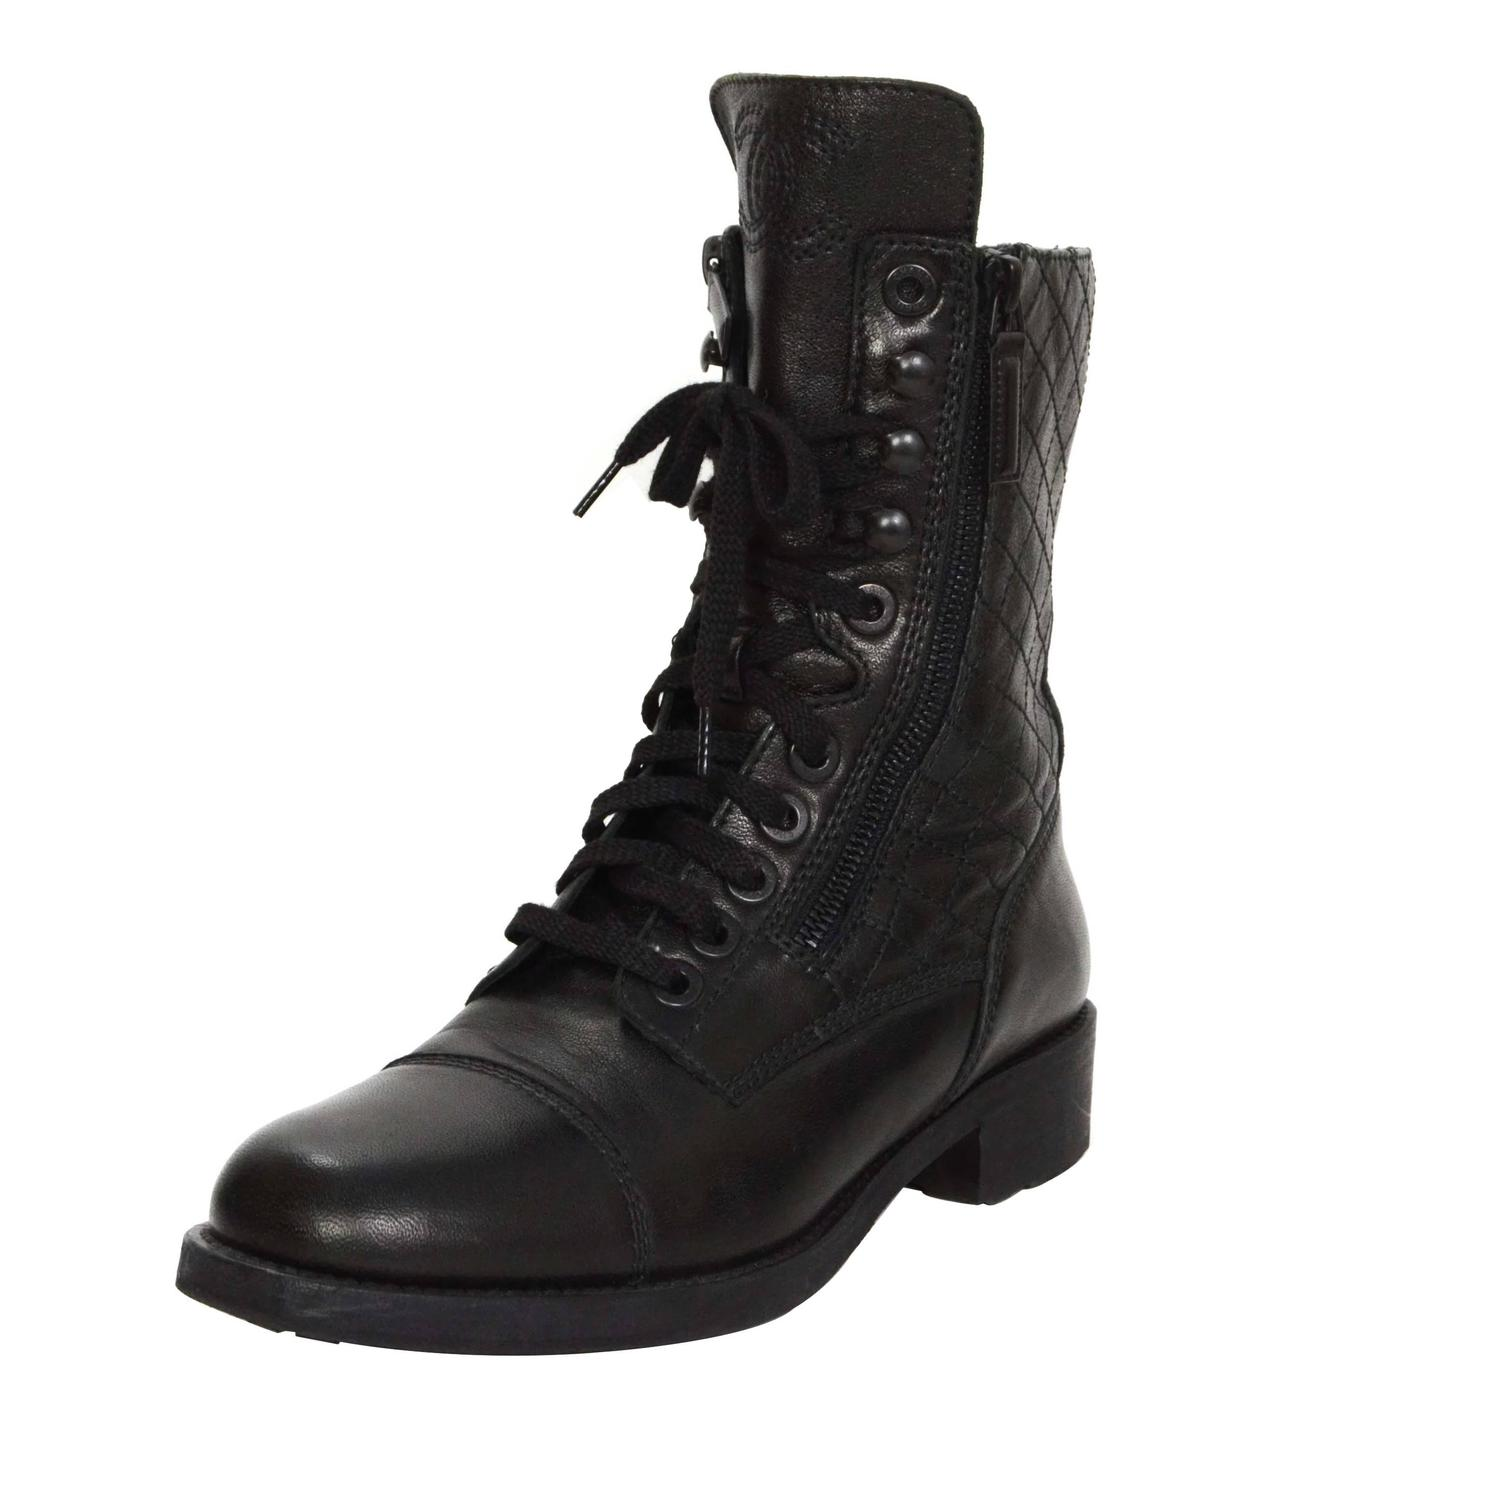 chanel black leather lace up combat boots sz 39 at 1stdibs